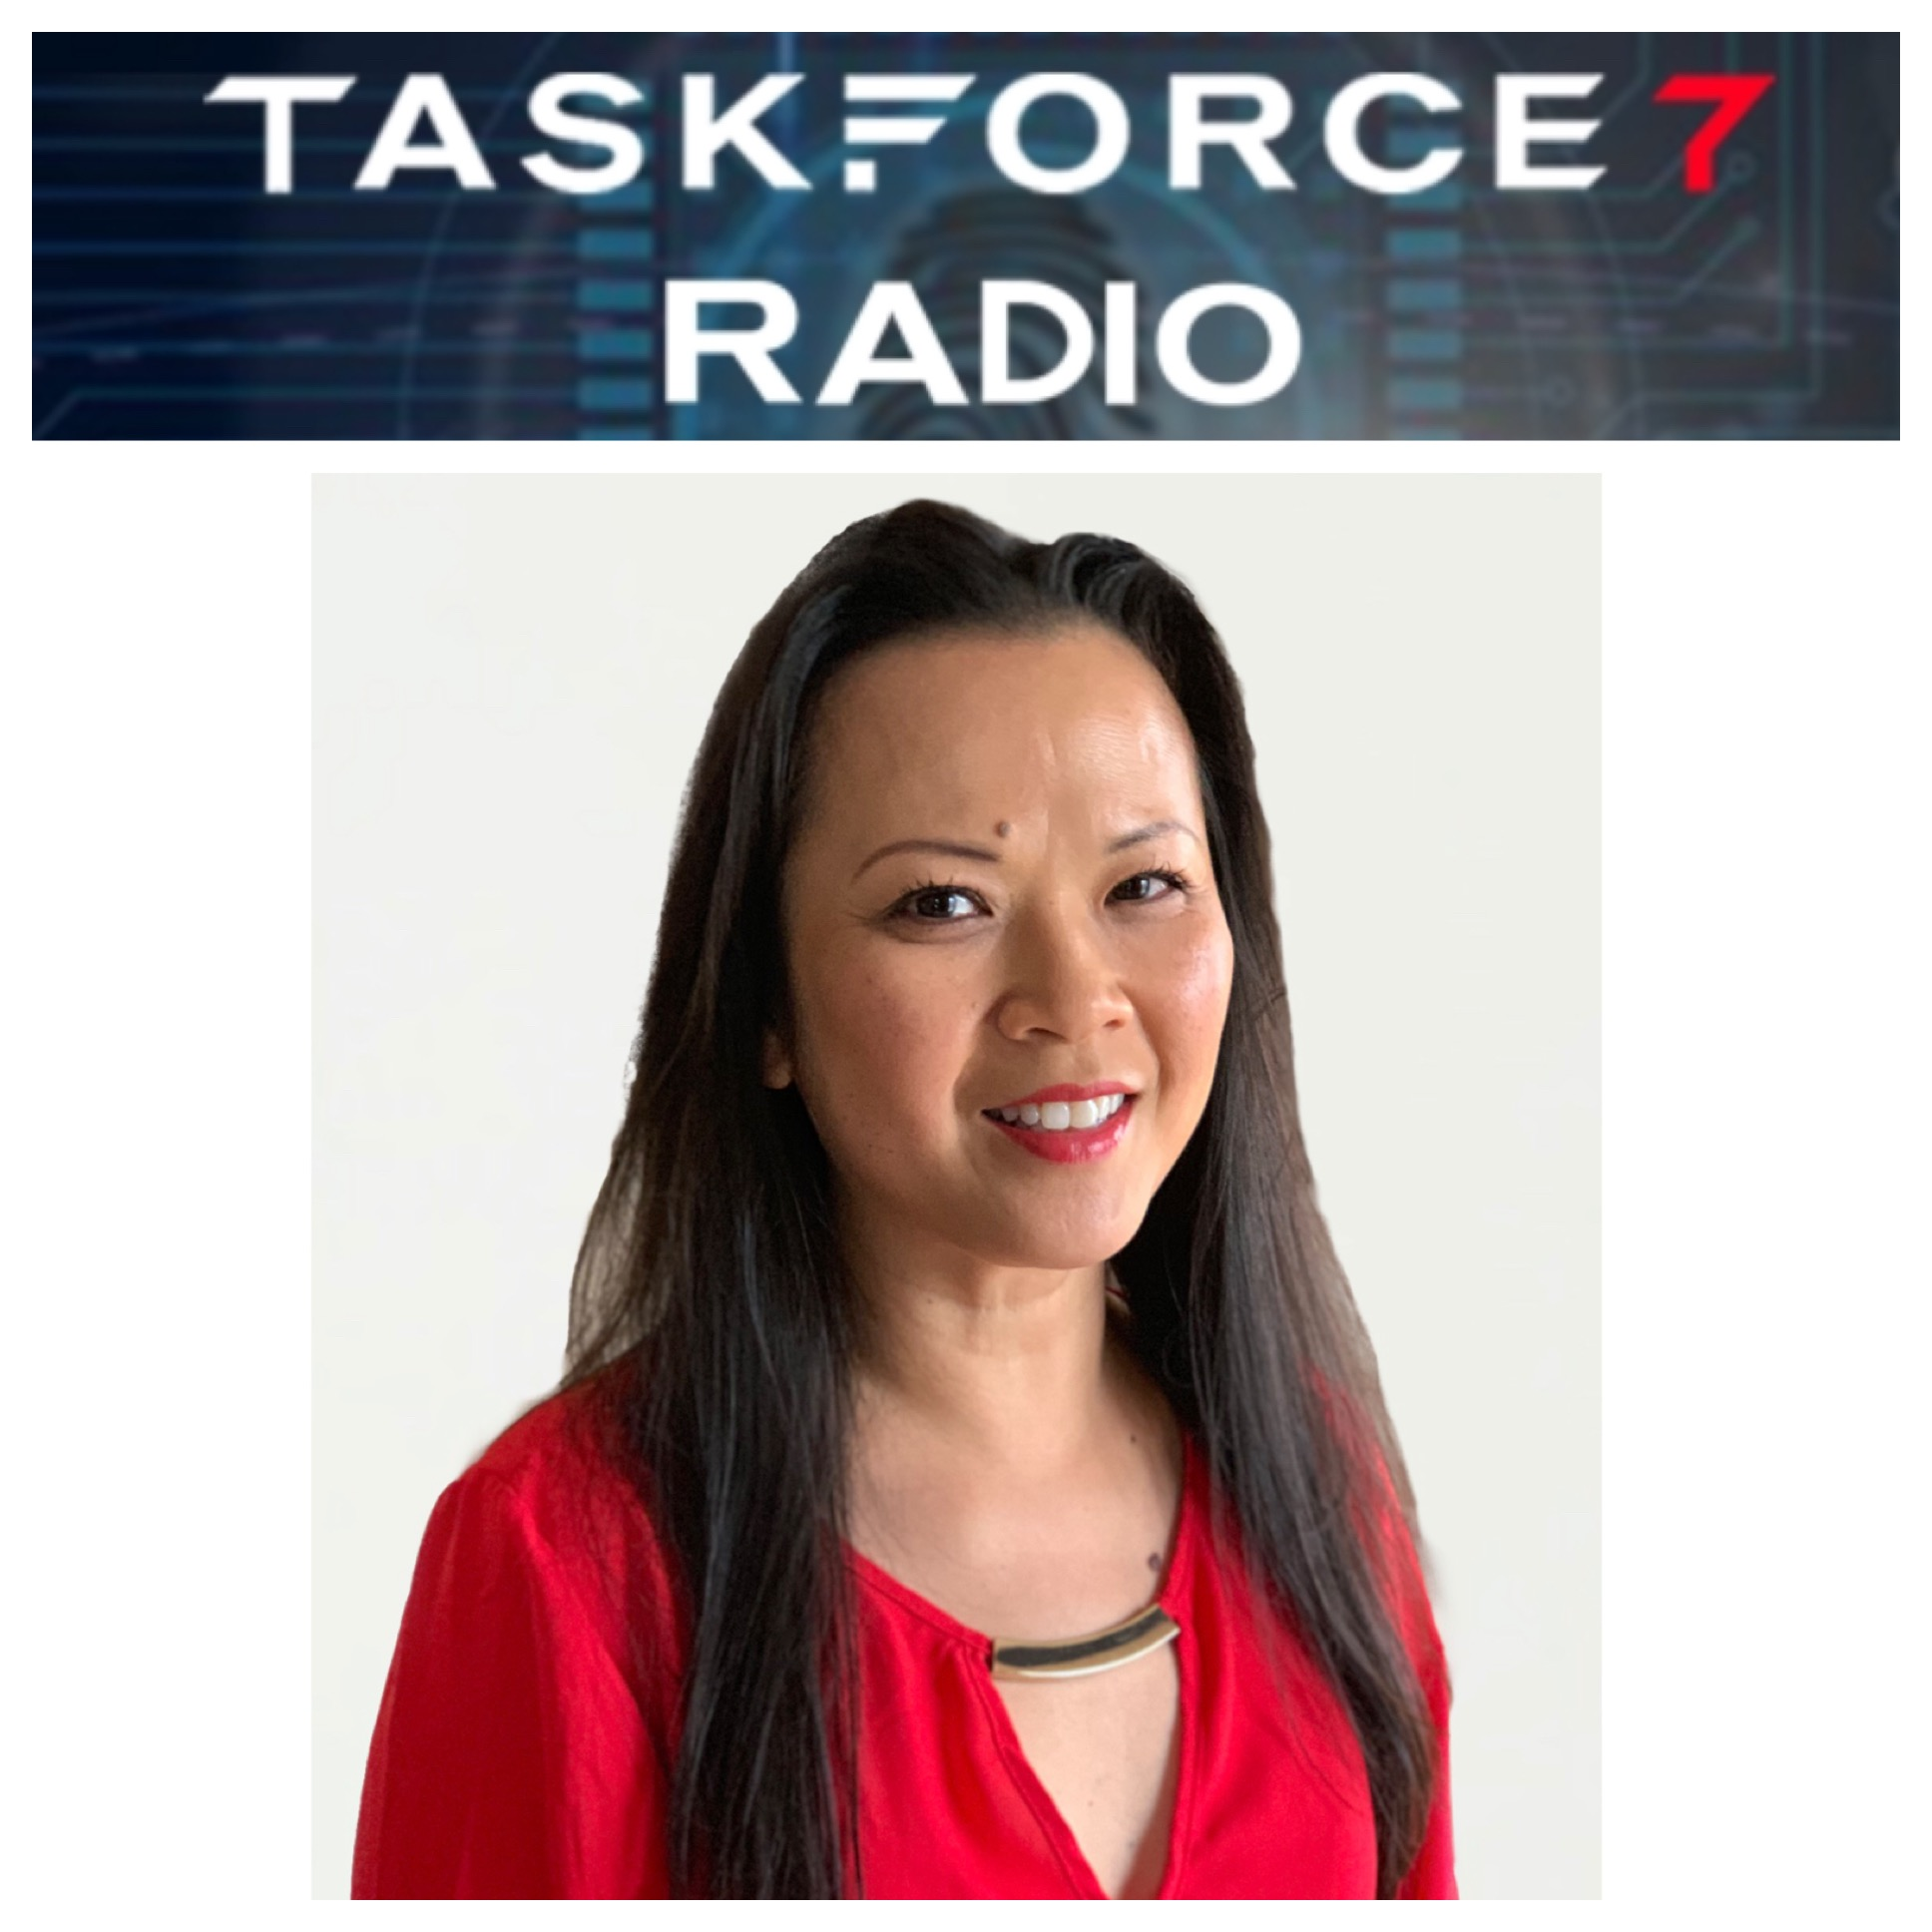 - (Task Force 7 Podcast, June 24, 2019)Ep. 89: Attracting Women to STEAM FieldsGeorge Rettas, one of the most well-known cyber security professionals in the world who oversees Cyber Intelligence and Cyber Investigations and Andy Bonillo, a former Special Agent with the U.S. Secret Service where he led the largest cybercrime investigation in U.S history and was awarded the Distinguished Service Award from the U.S. Attorney General, interview